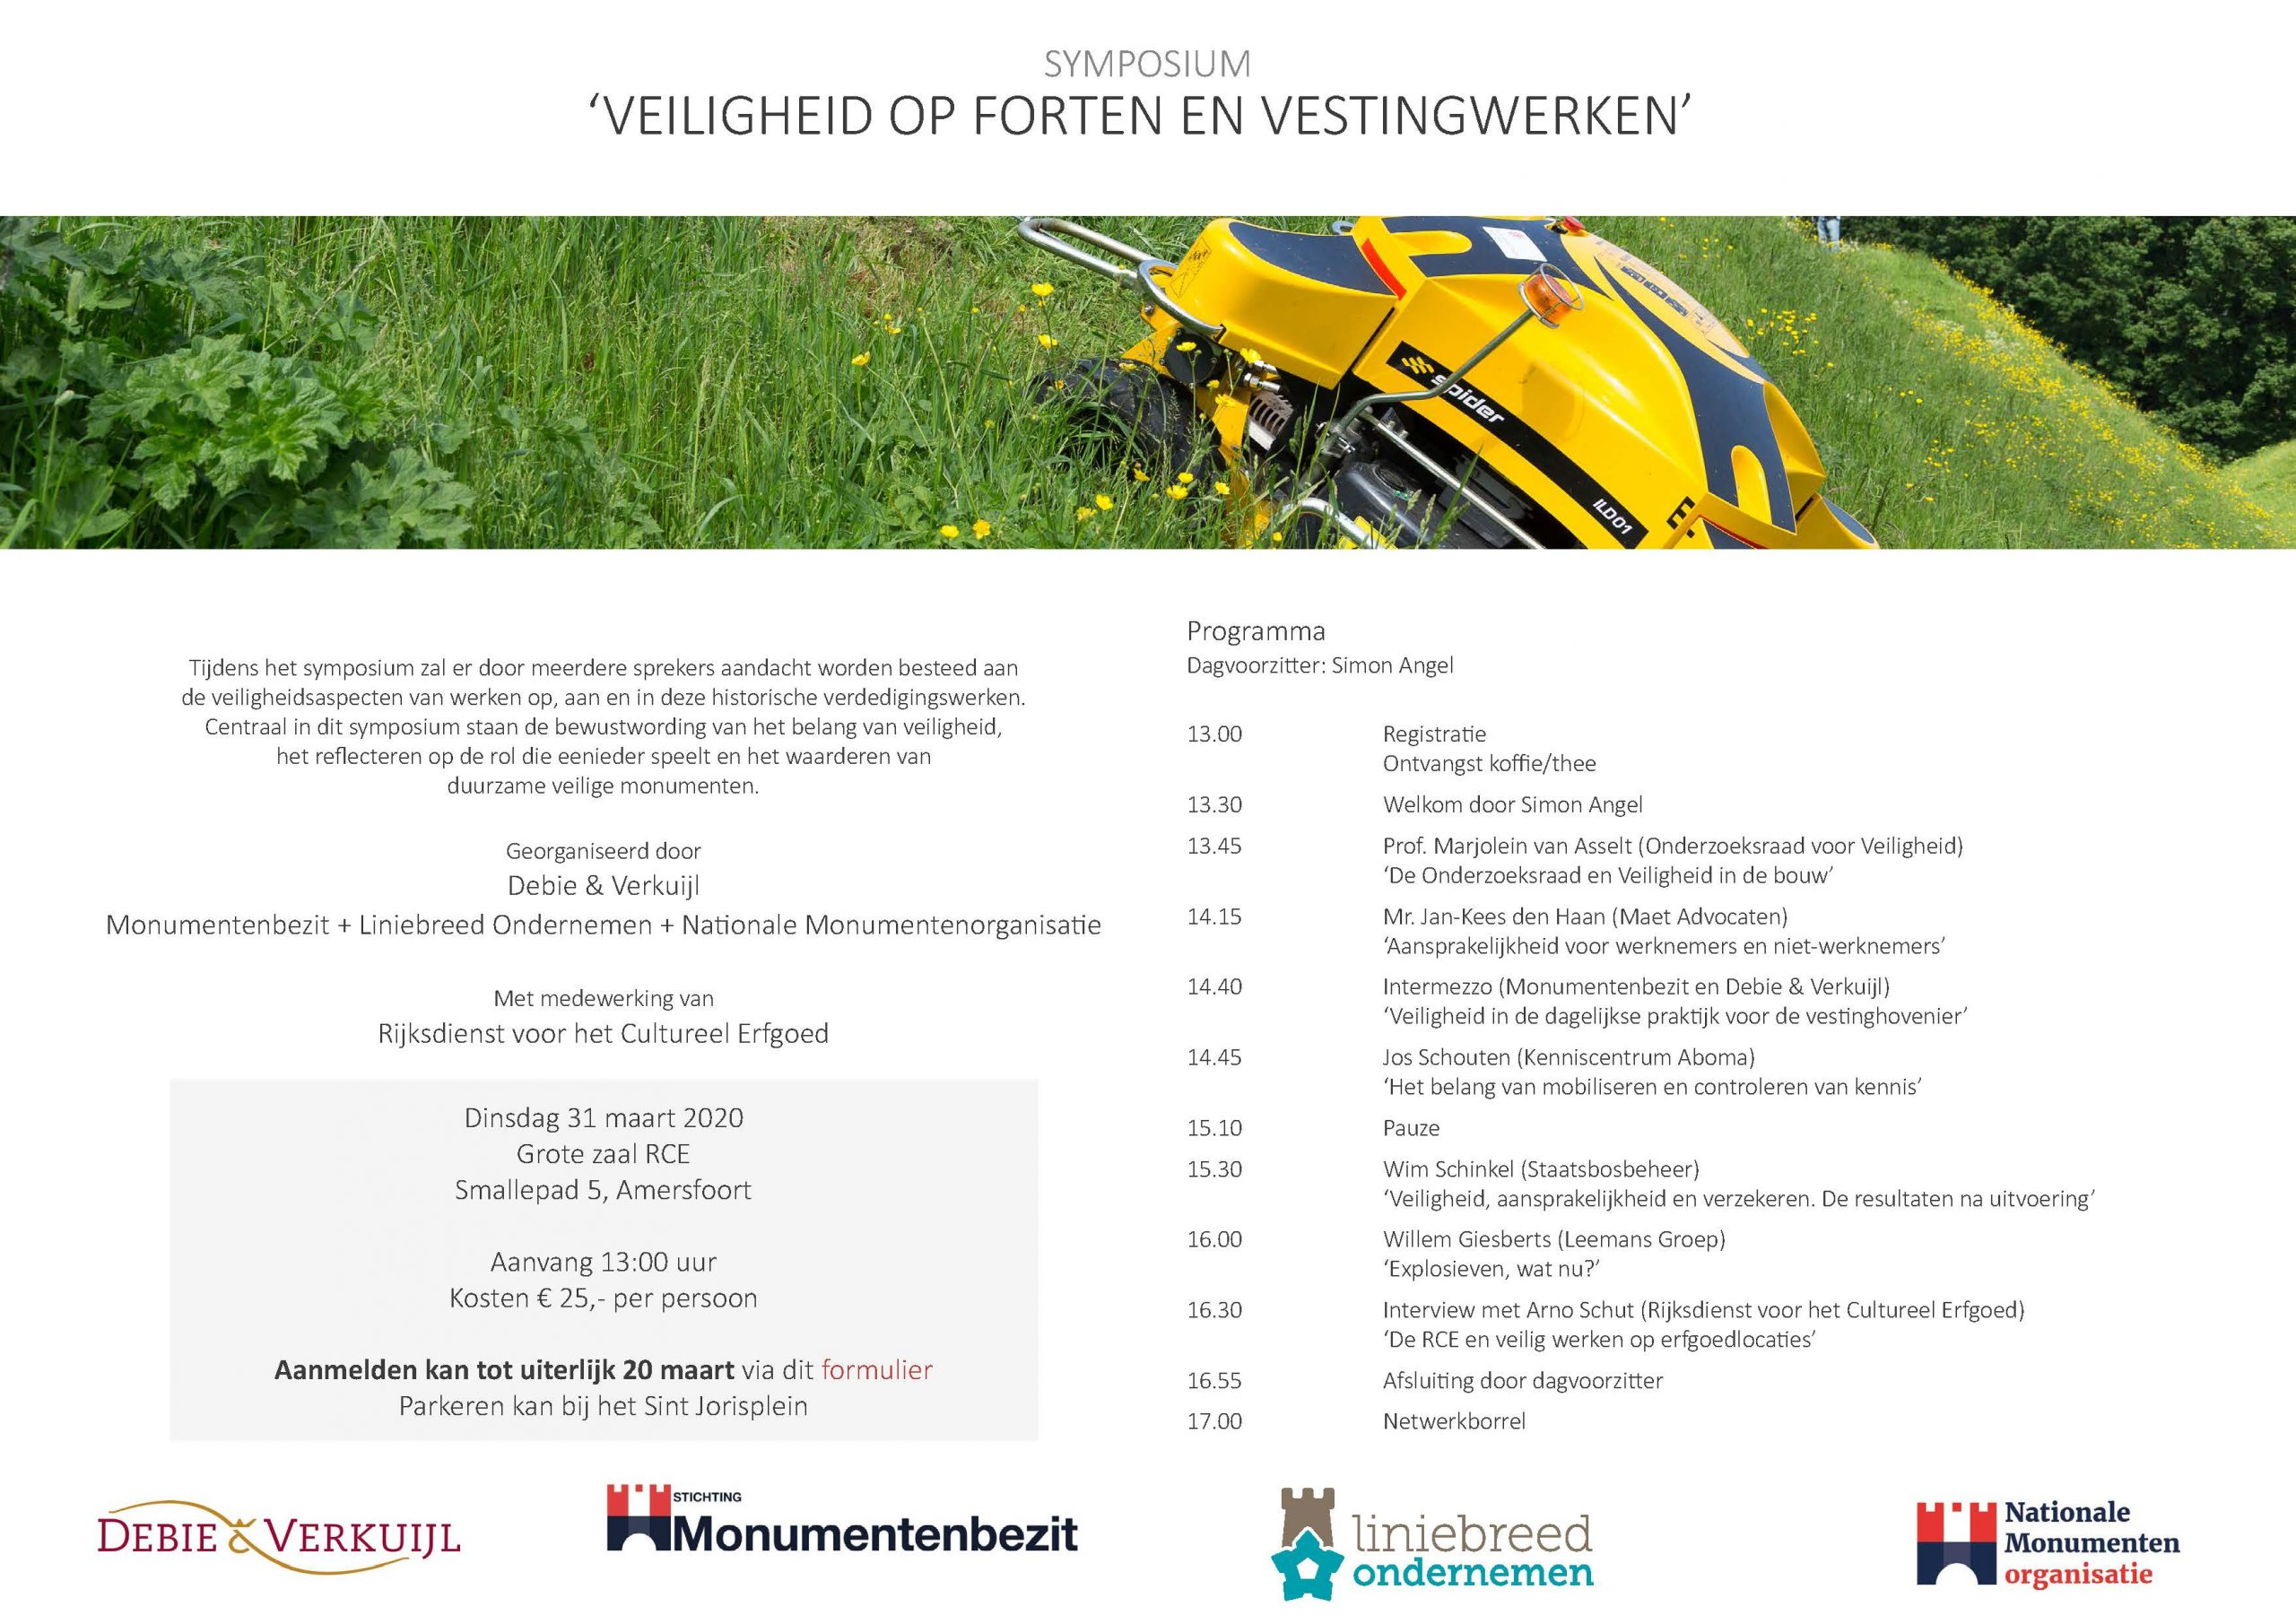 https://www.debieenverkuijl.nl/wp-content/uploads/2020/02/20200203-SYMPOSIUM-VEILIGHEID-uitnodiging-3MB-scaled.jpg